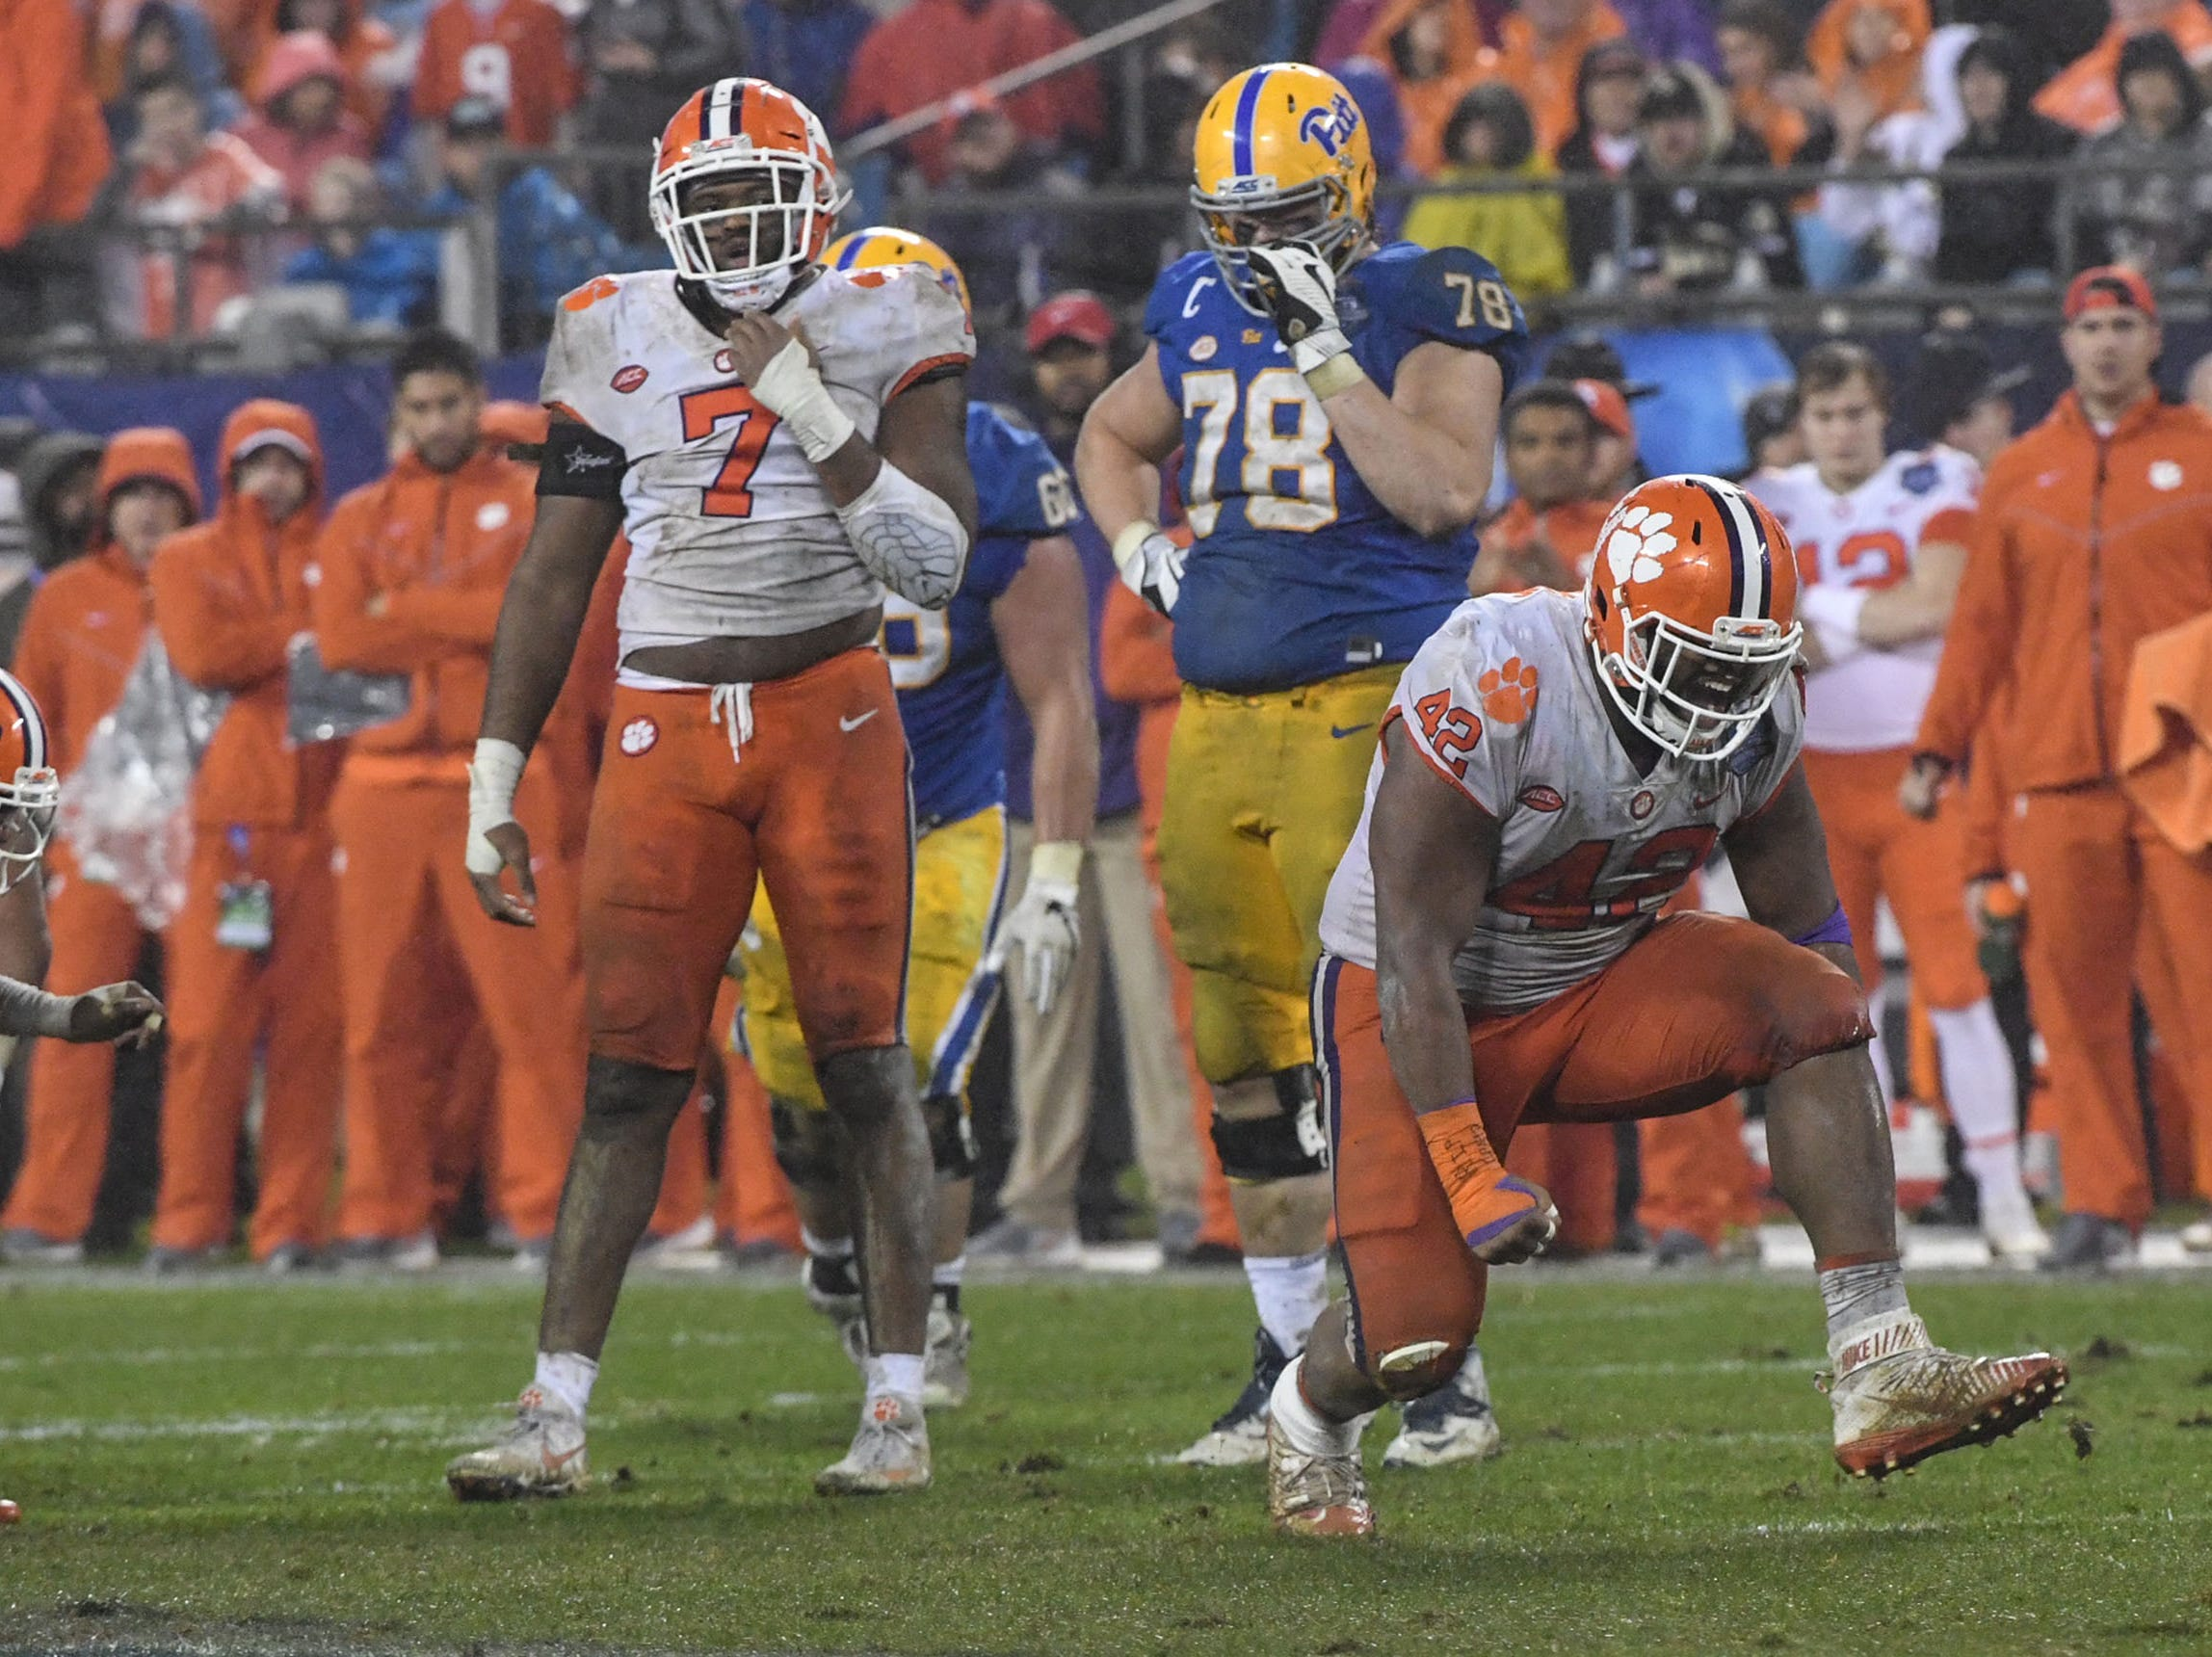 Clemson defensive lineman Christian Wilkins (42) reacts after tackling Pittsburgh running back Darrin Hall during the fourth quarter in Memorial Stadium on Saturday, November 3, 2018.